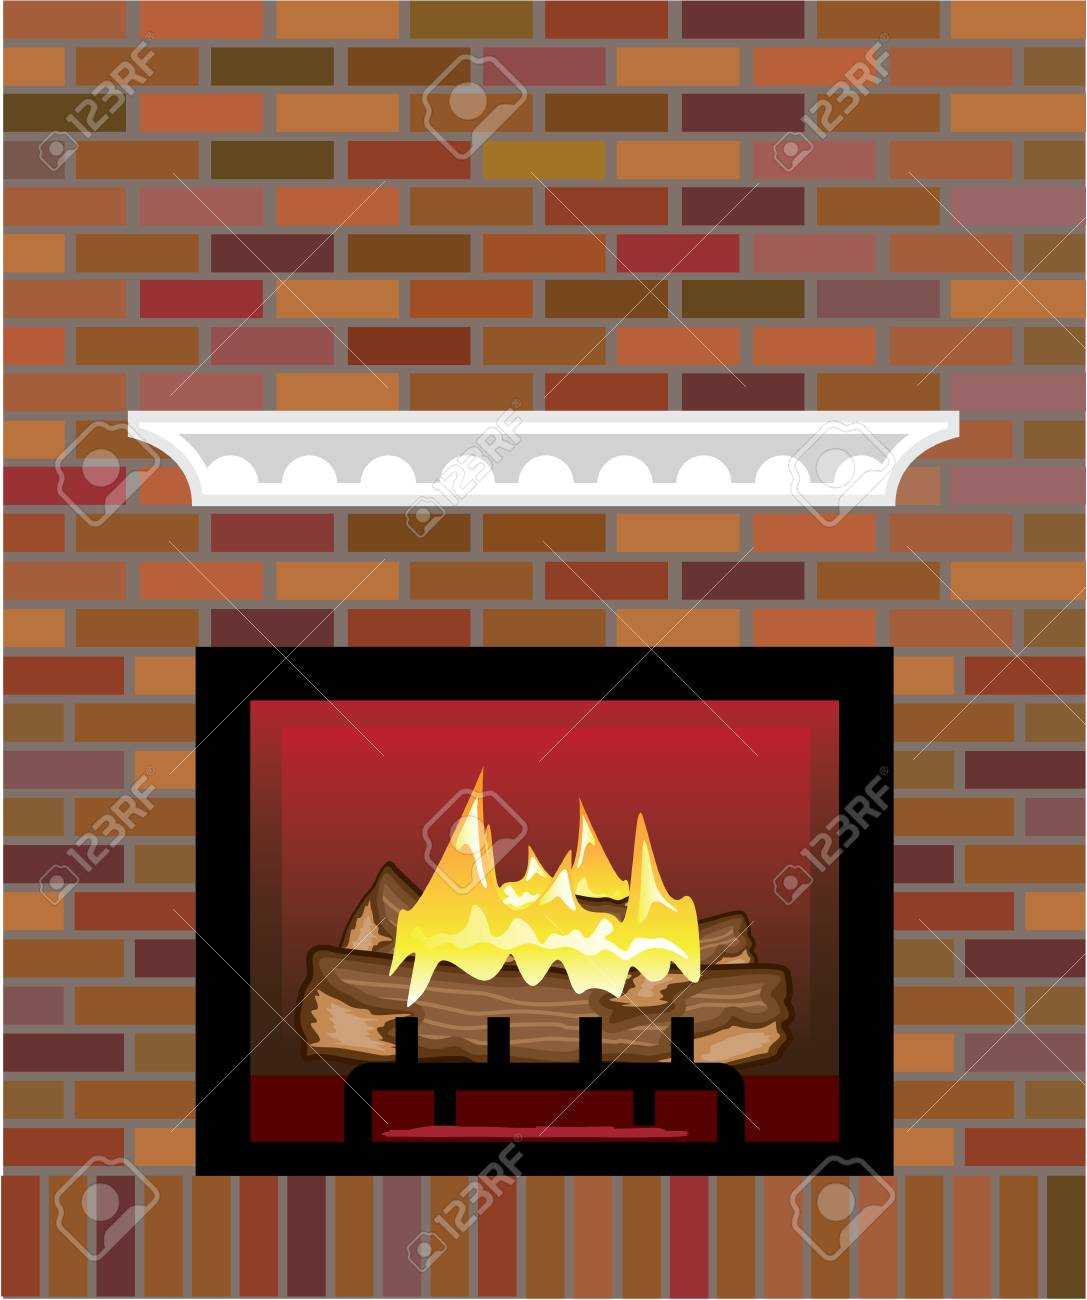 Brick Fireplace Vector Illustration Clip Art Image Royalty Free